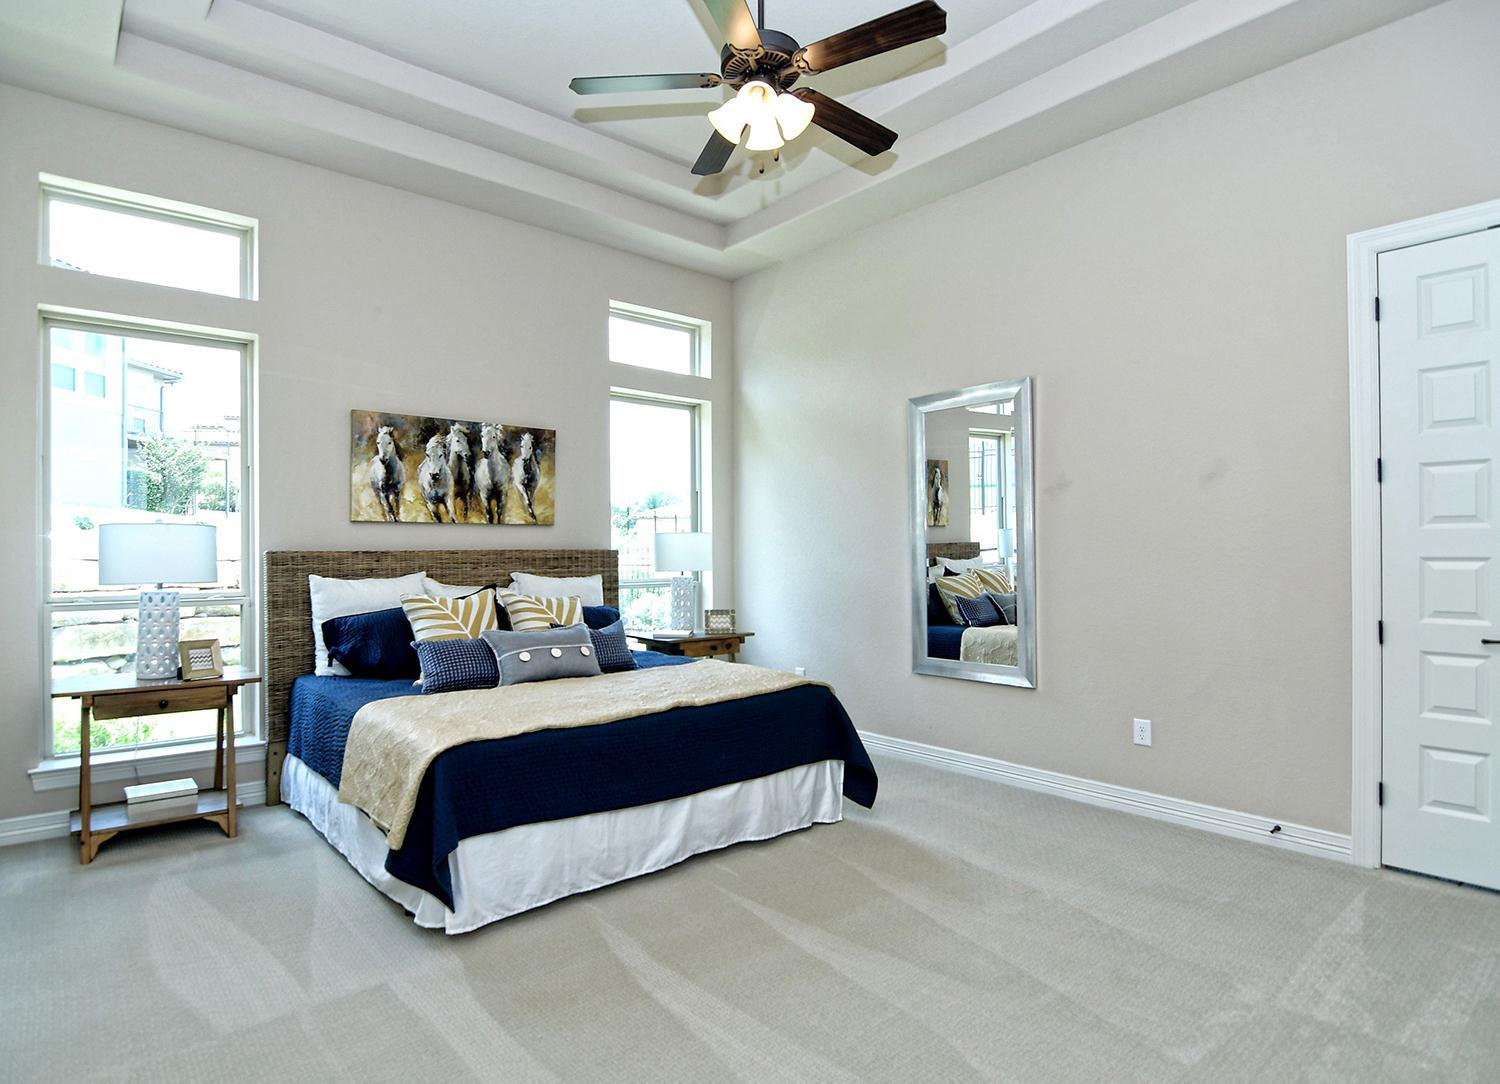 Bedroom featured in the Arezzo By Sitterle Homes in San Antonio, TX